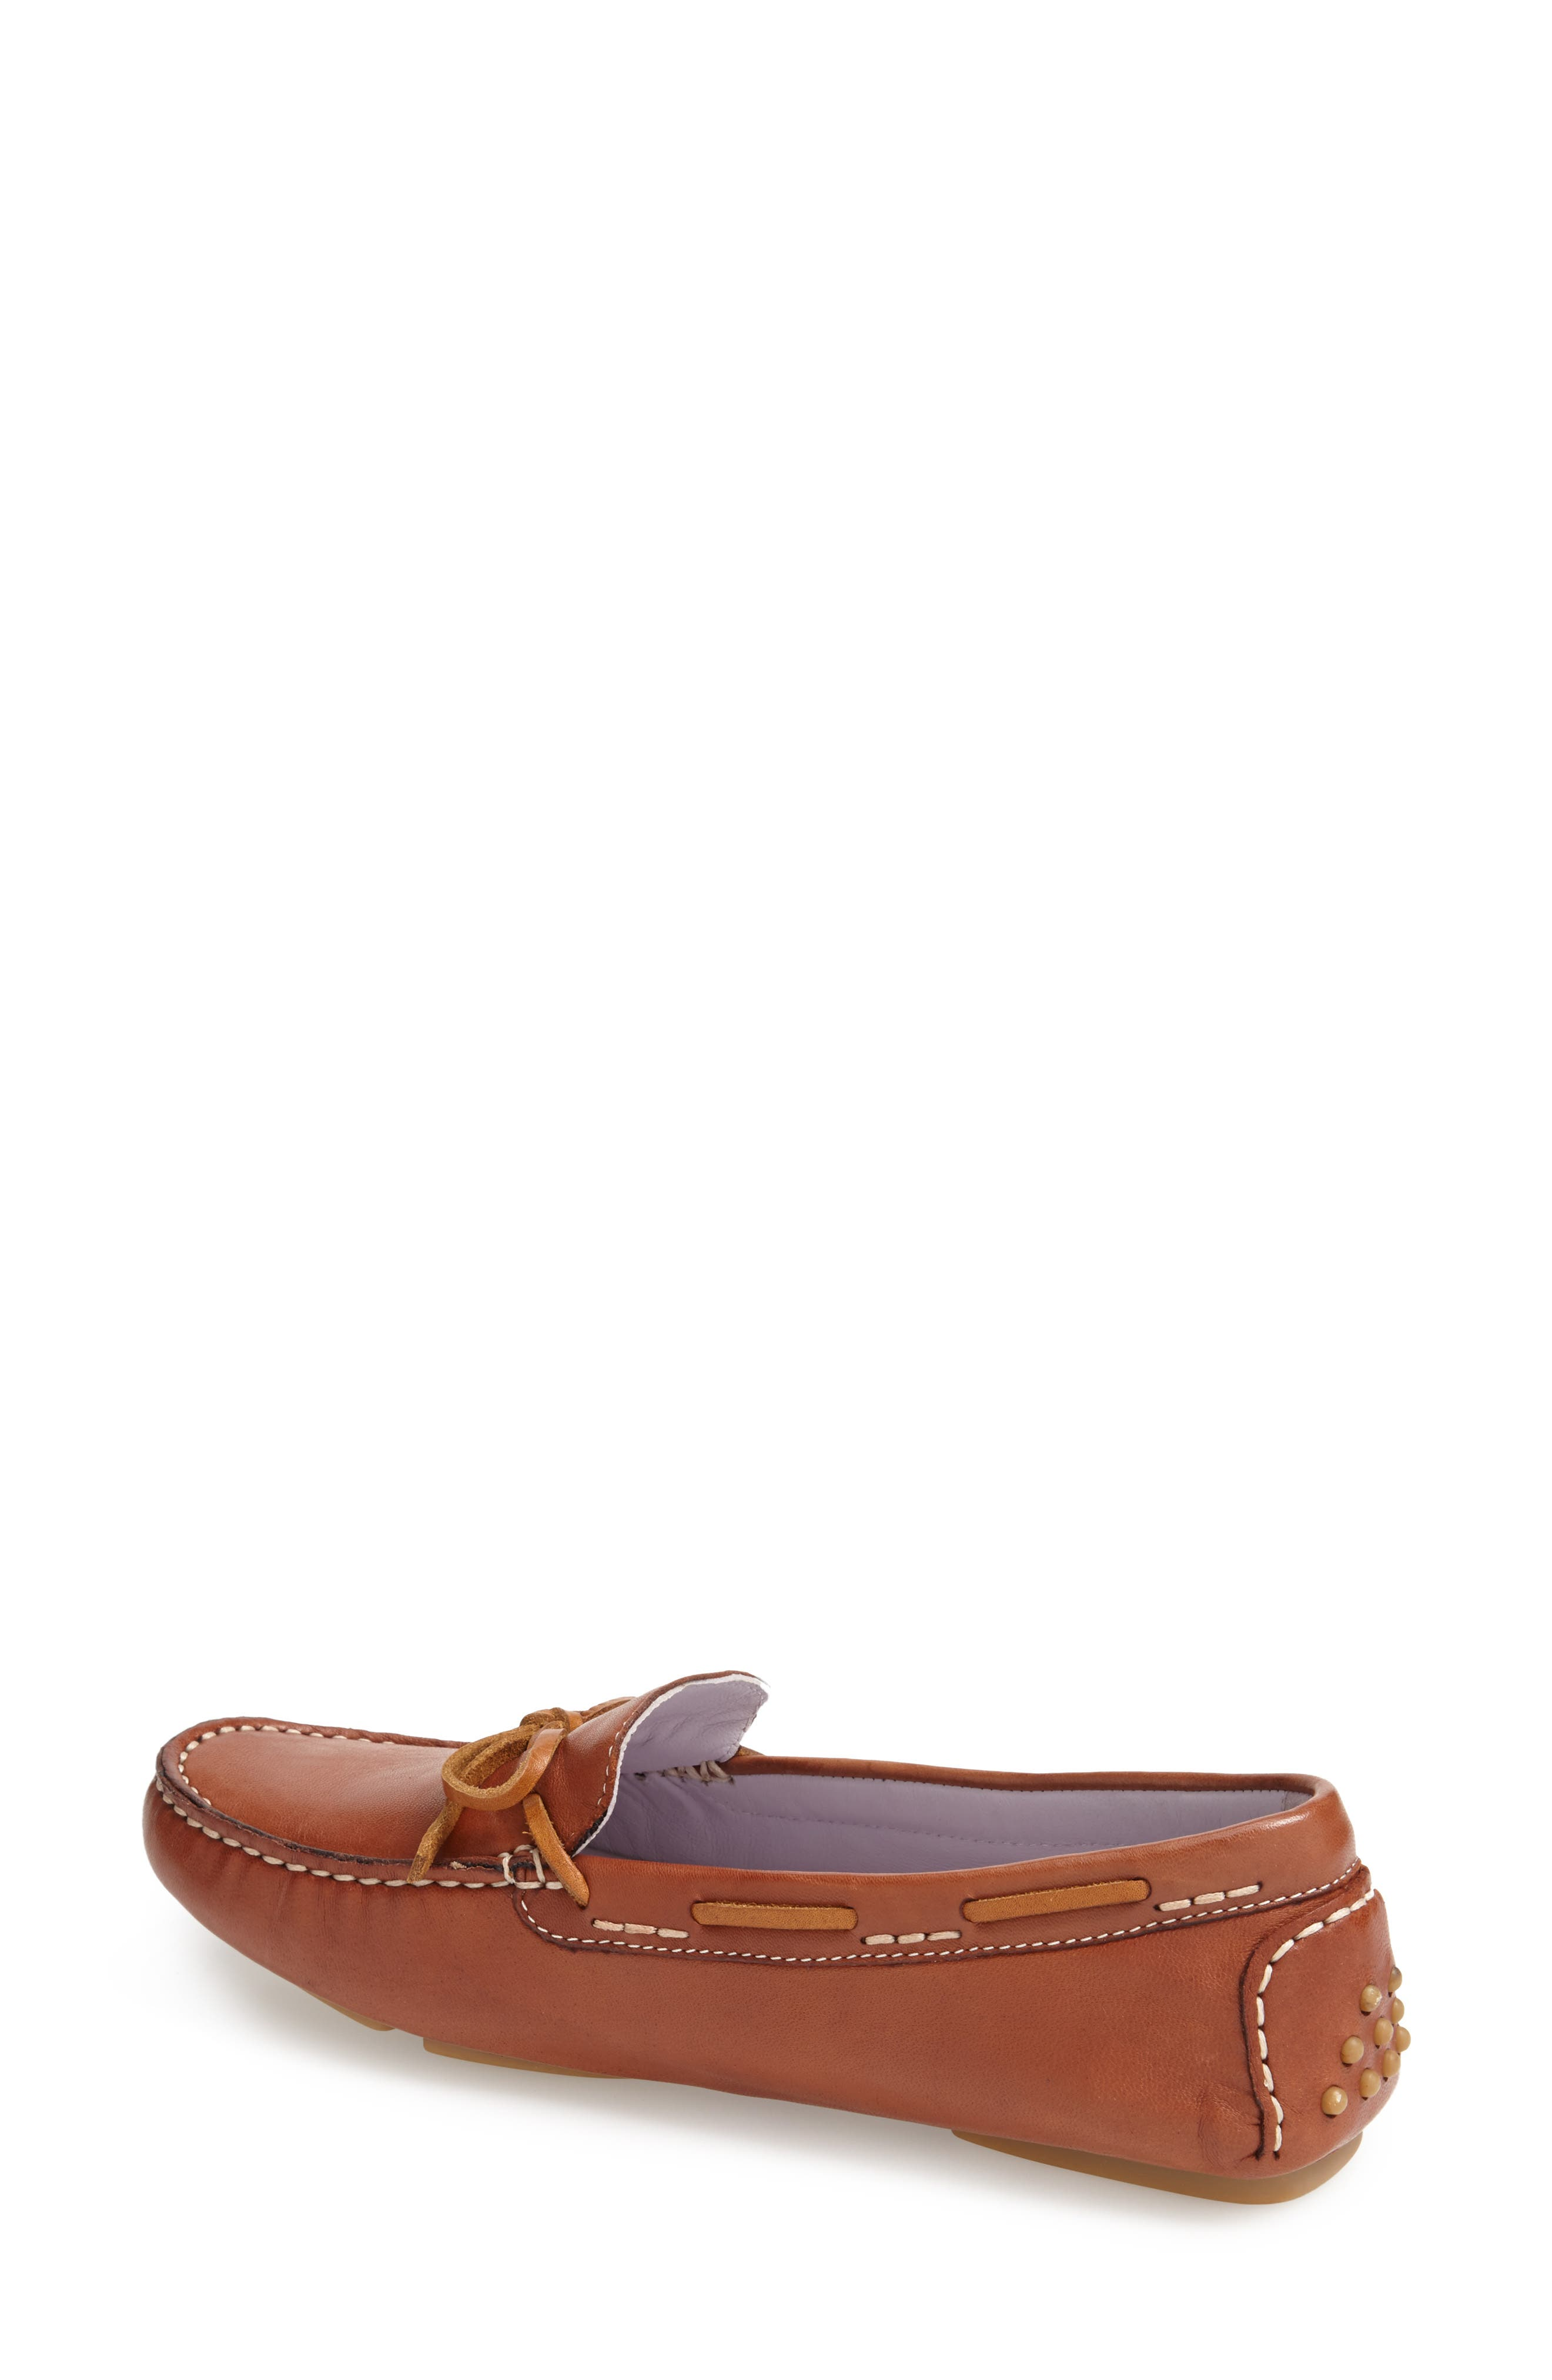 'Maggie' Moccasin,                             Alternate thumbnail 2, color,                             741